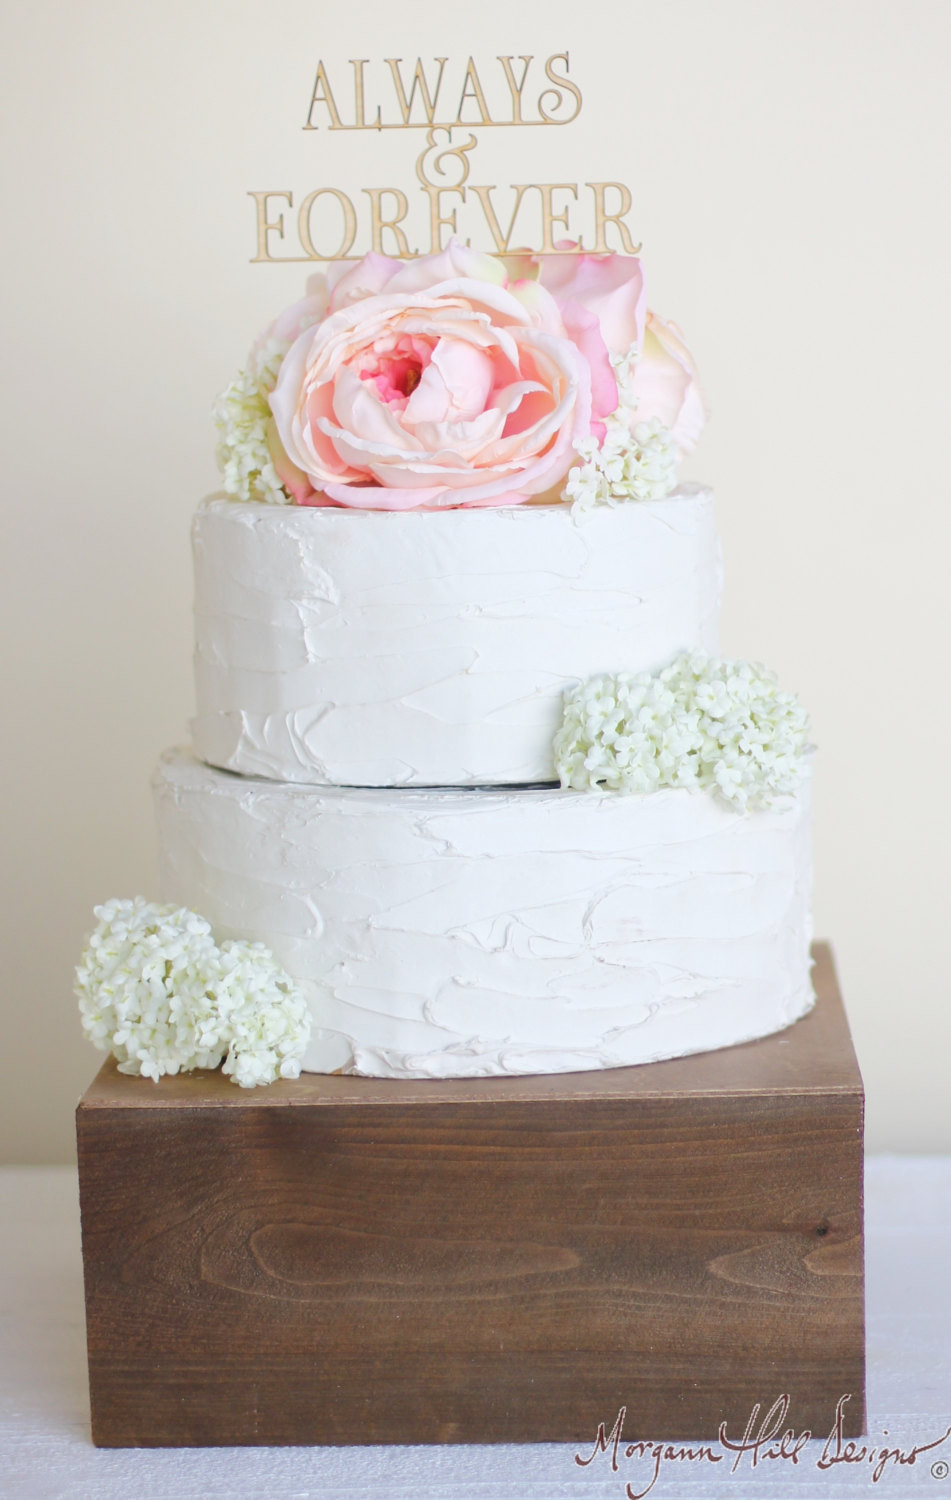 Cake Toppers For Wedding Cakes  27 of the Cutest Wedding Cake Toppers You ll Ever See